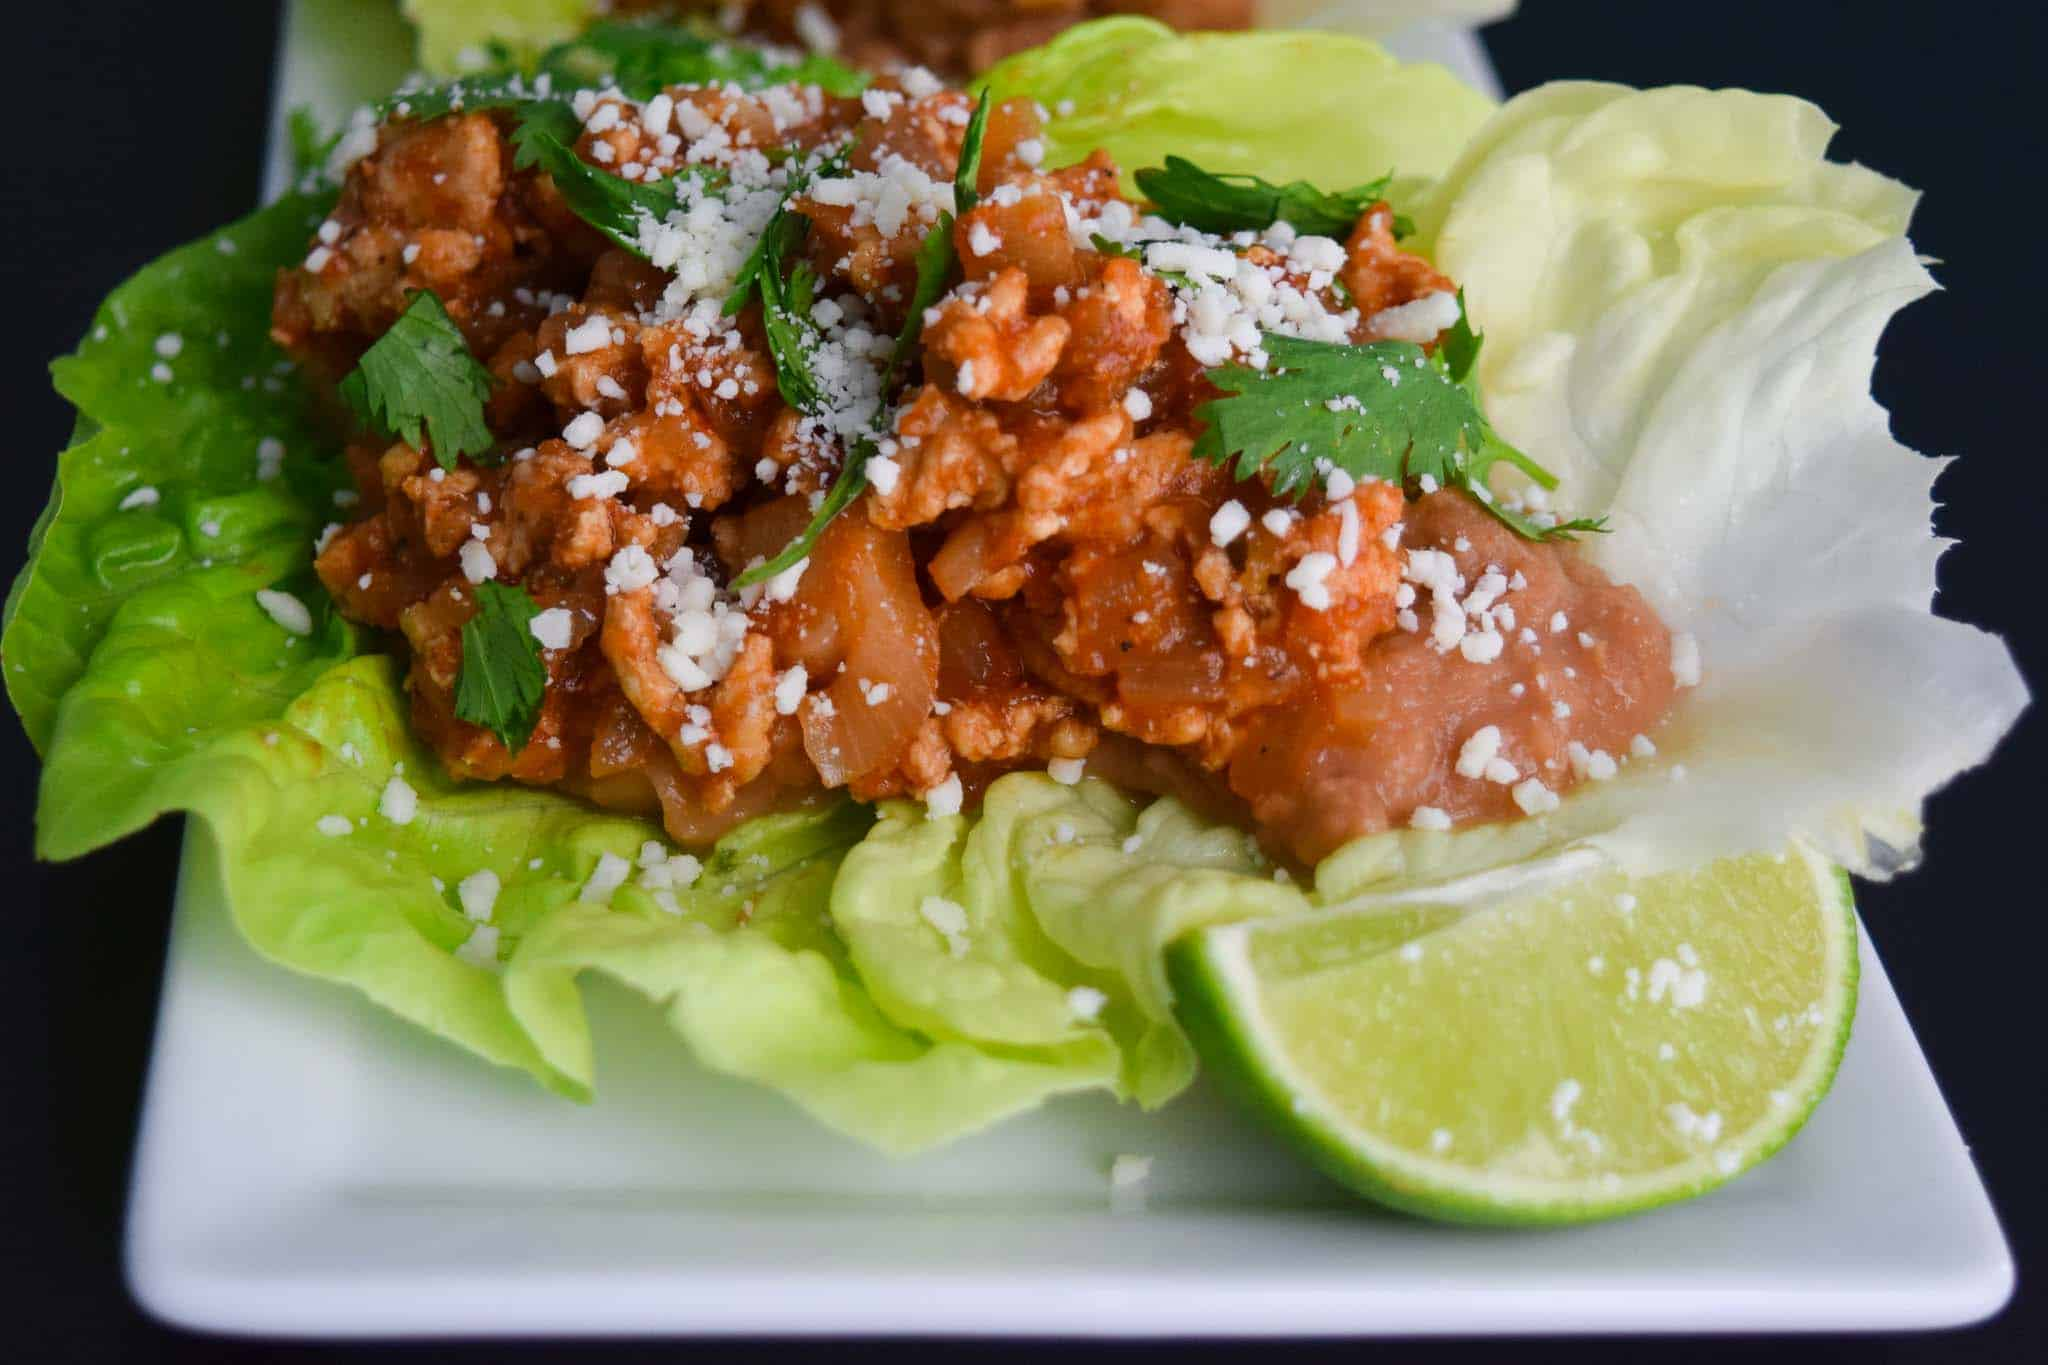 Chicken Taco in Lettuce Wraps on white platter close up view